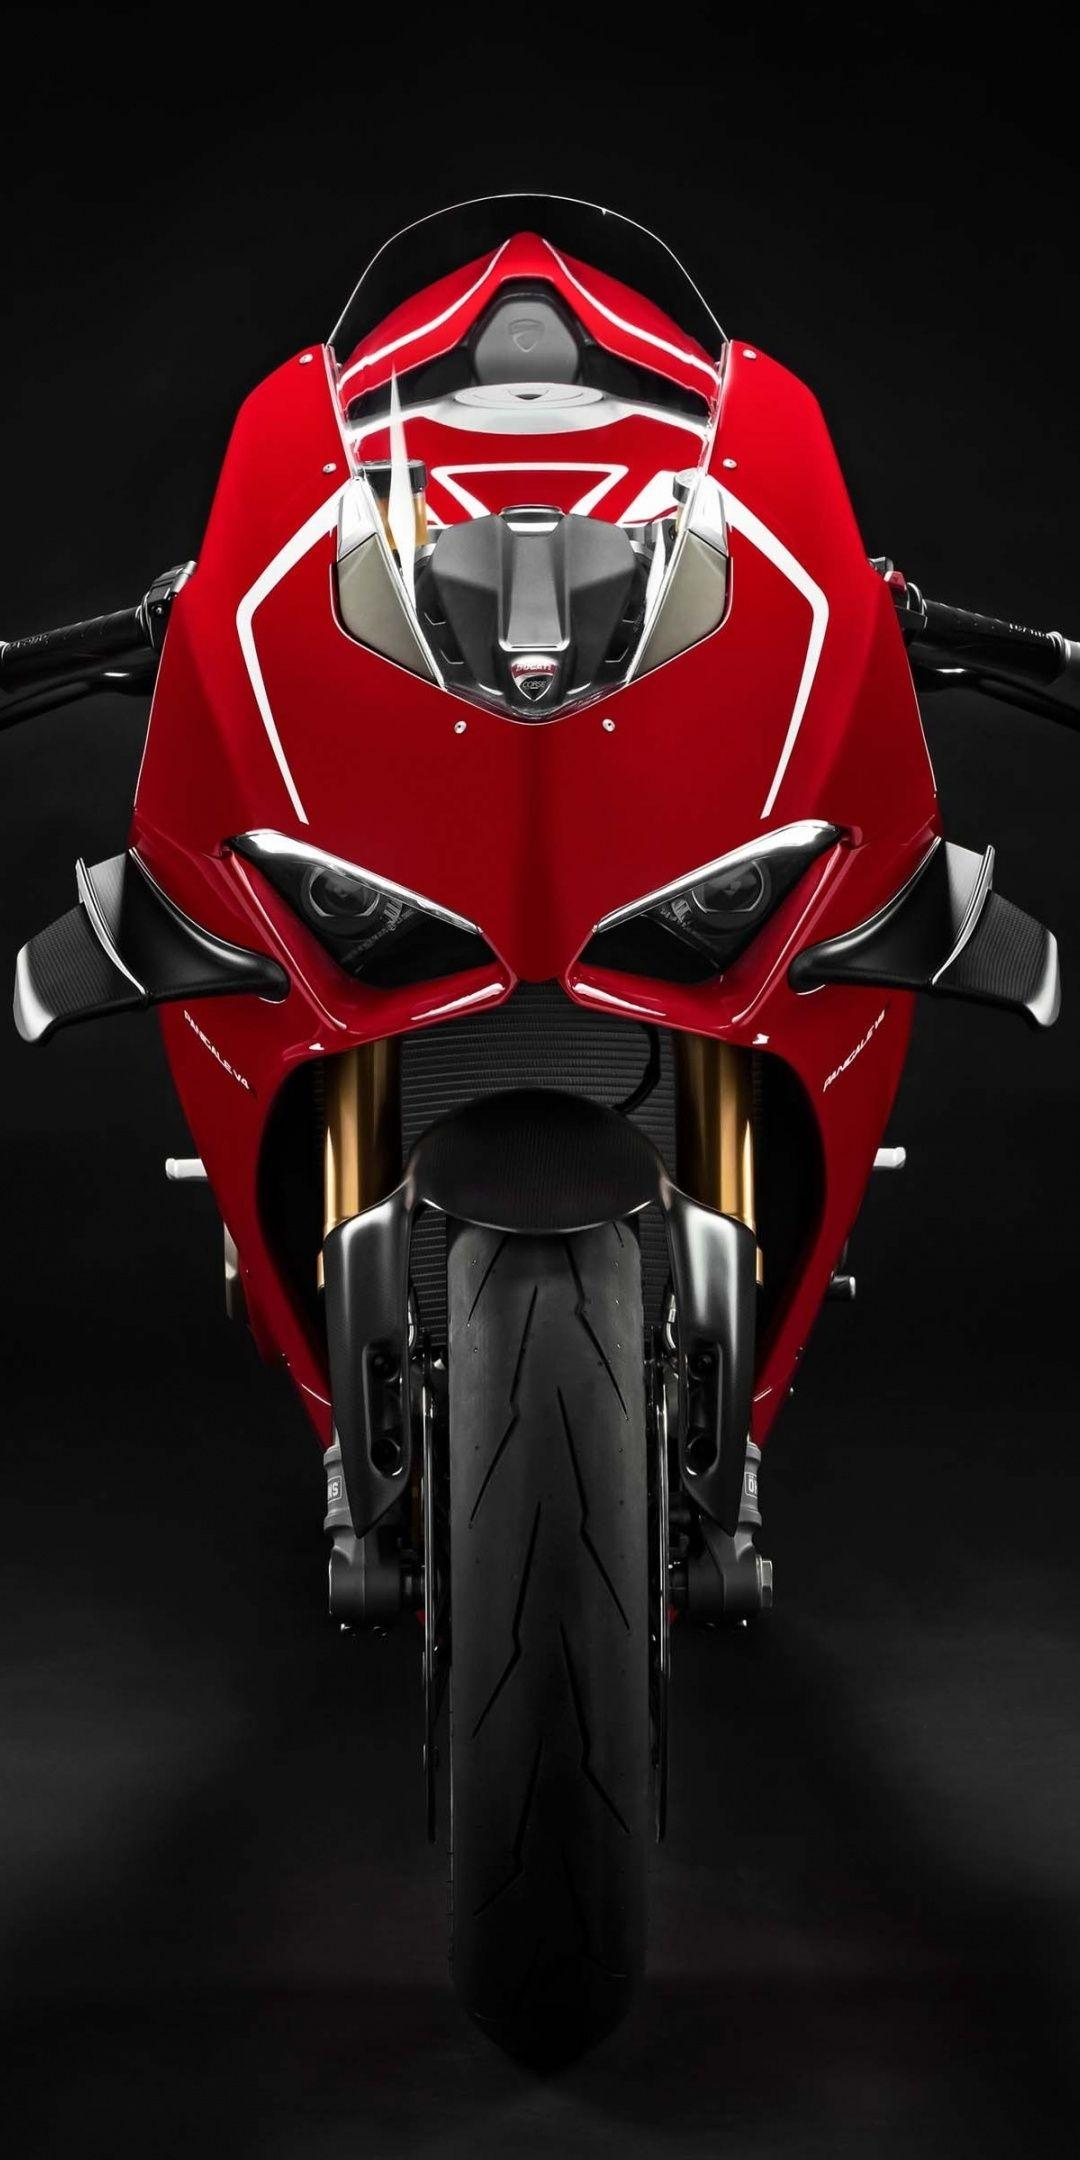 Ducati Panigale V4r Wallpapers Wallpaper Cave